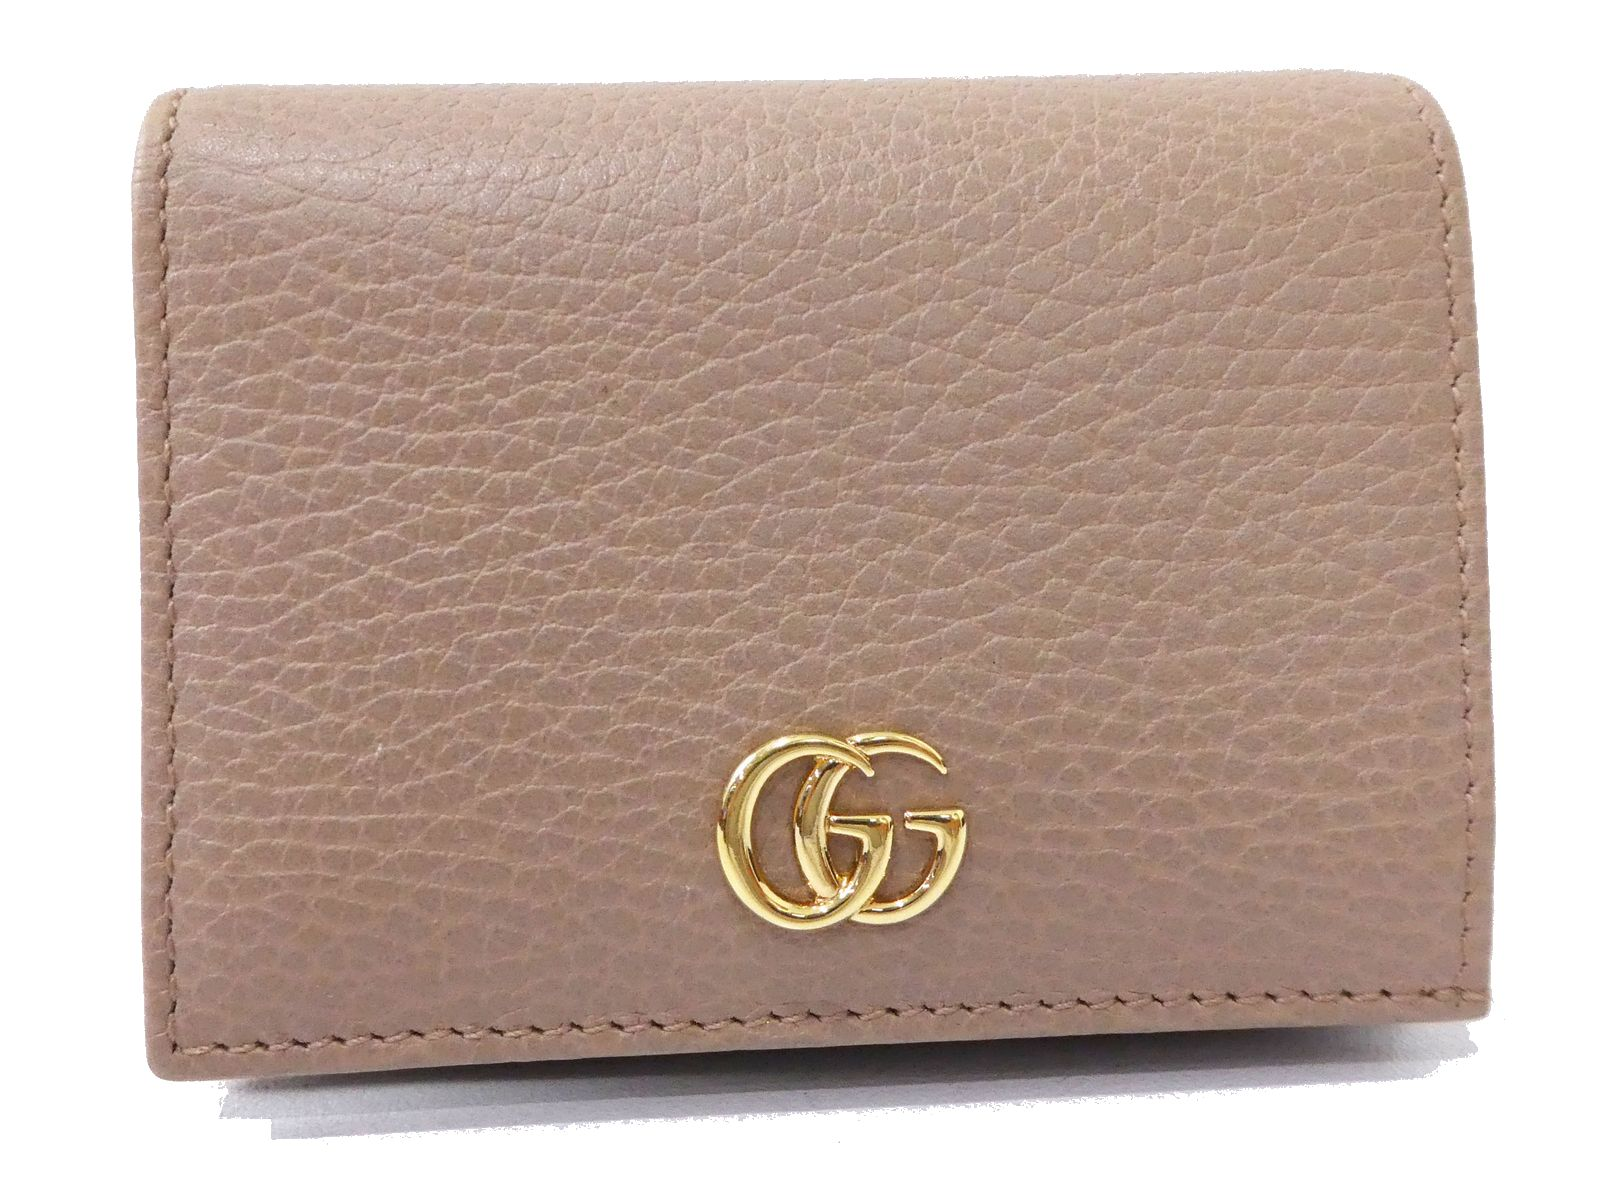 318867921c3 Details about Auth GUCCI Leather GG Marmont Coin Purse Card Holder Case Pink  Brand new C1585